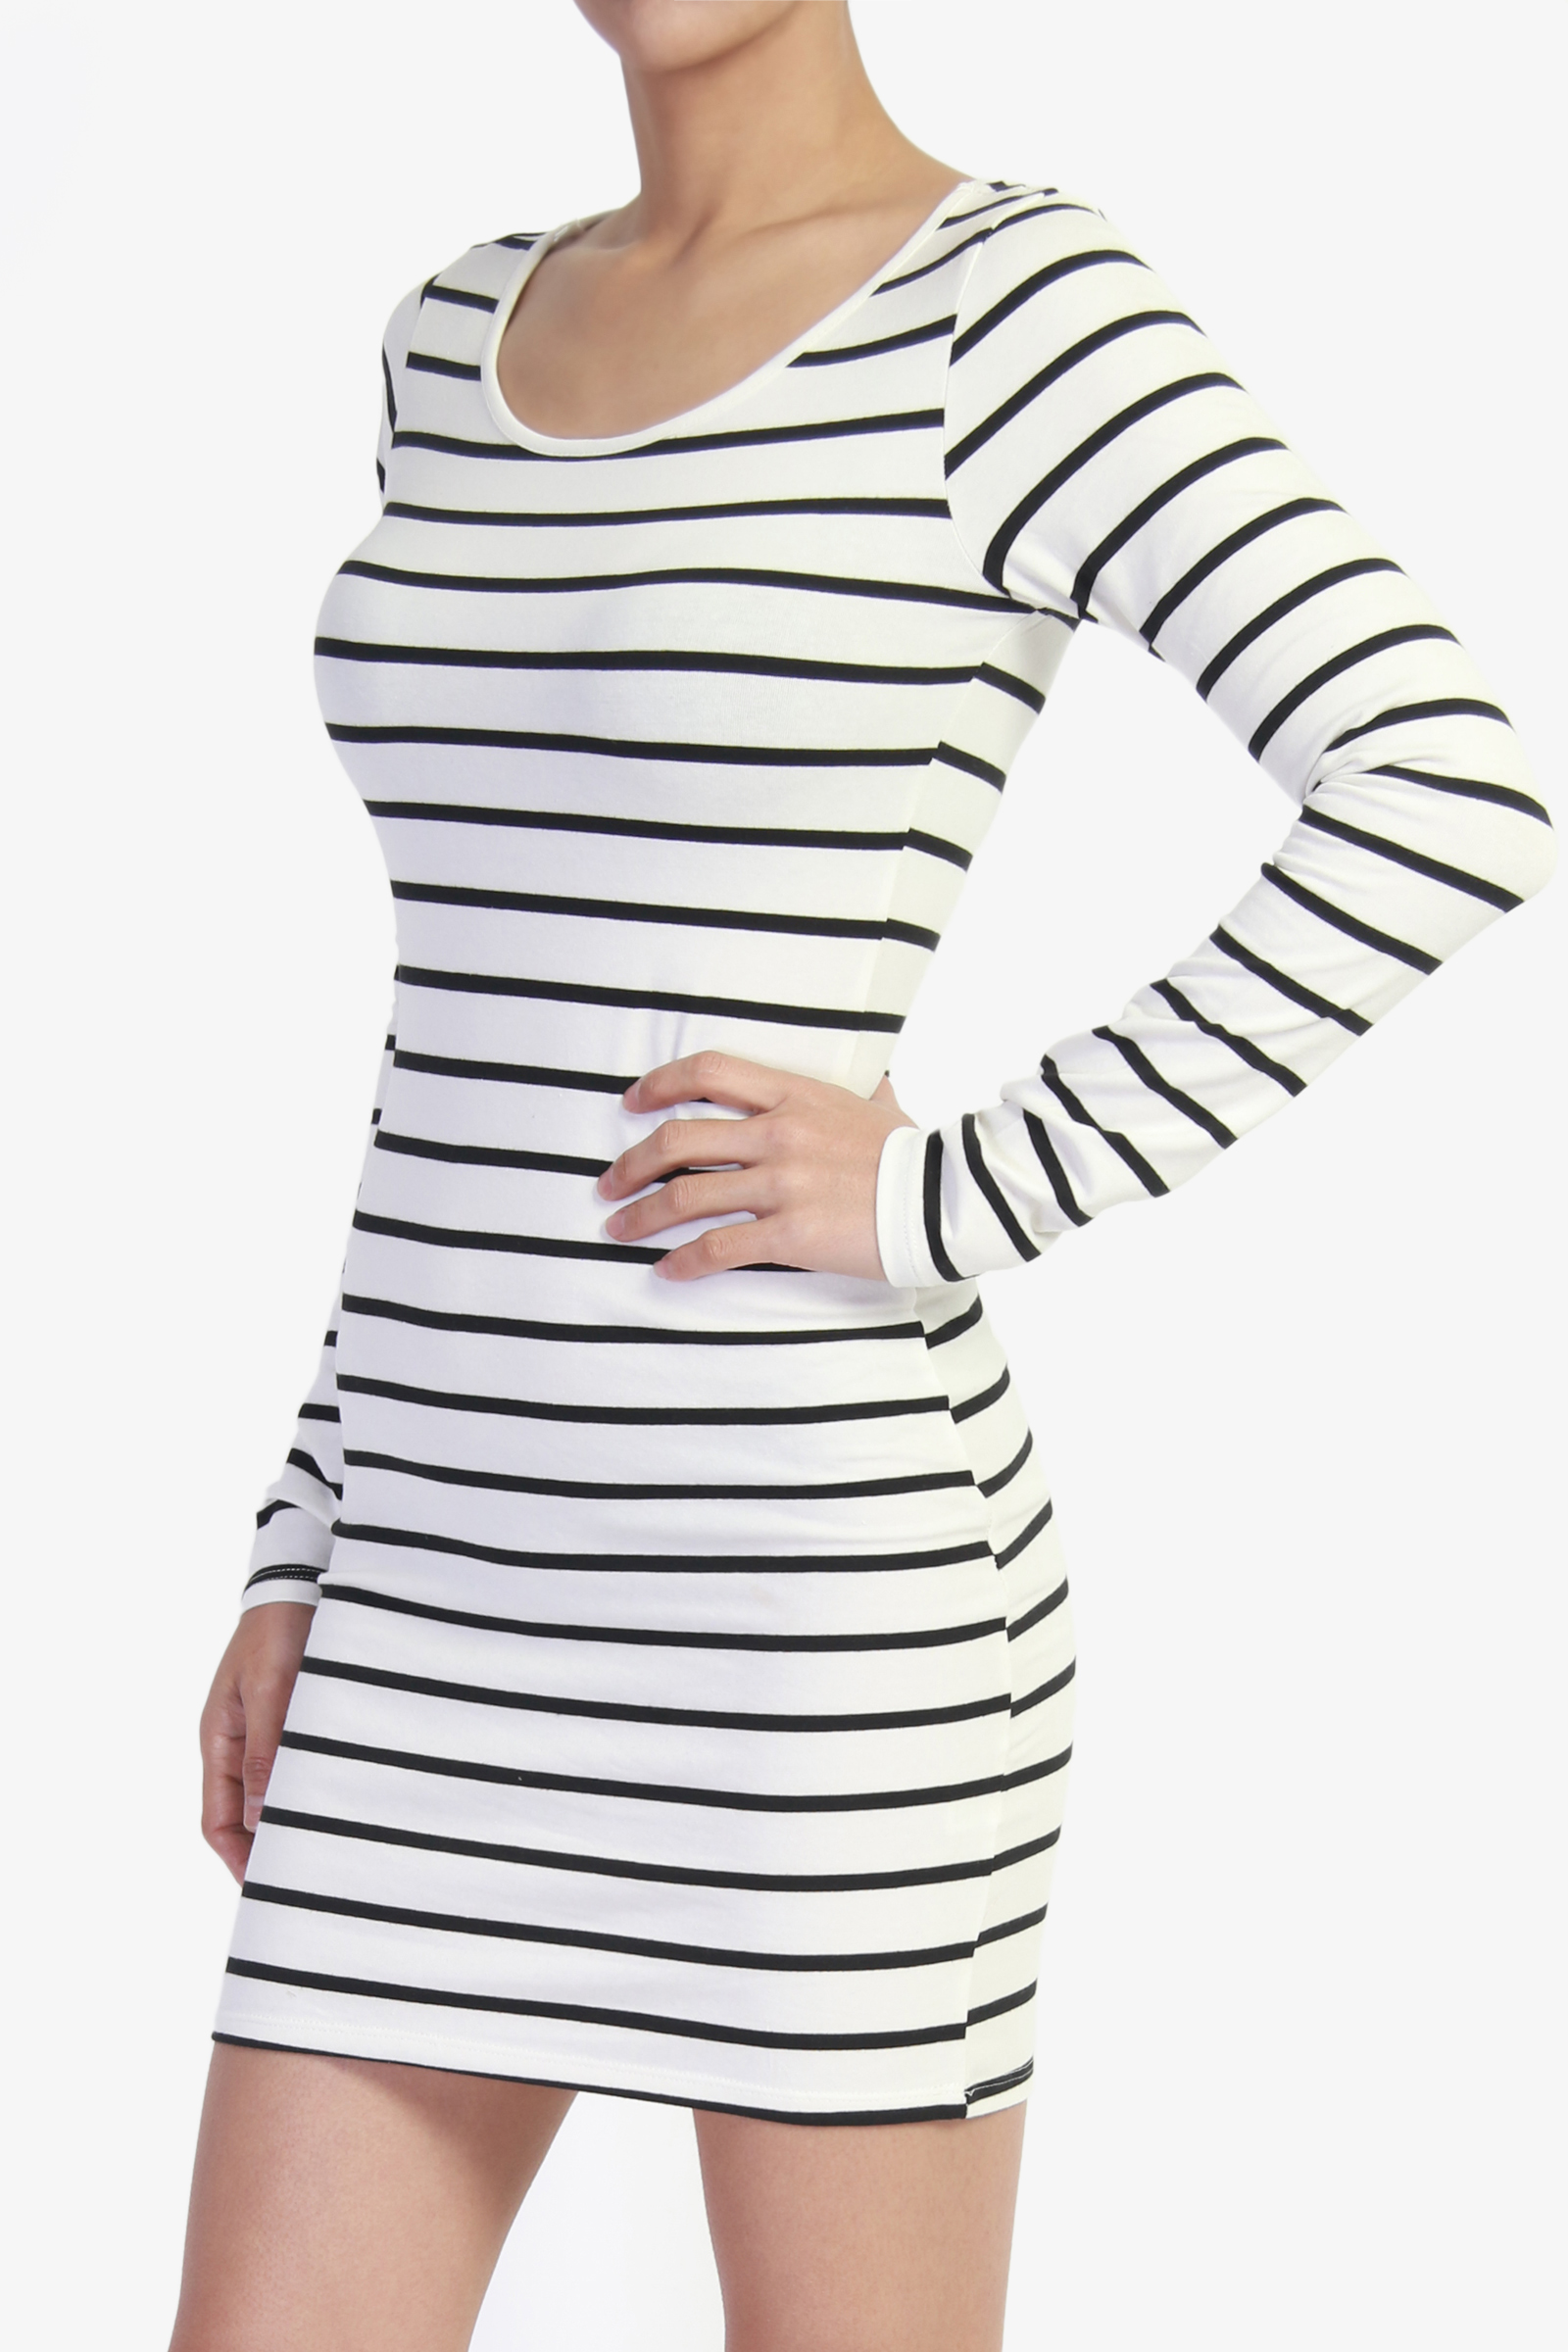 TheMogan Black & White Stripe Long Sleeve Comfy Casual Bodycon ...